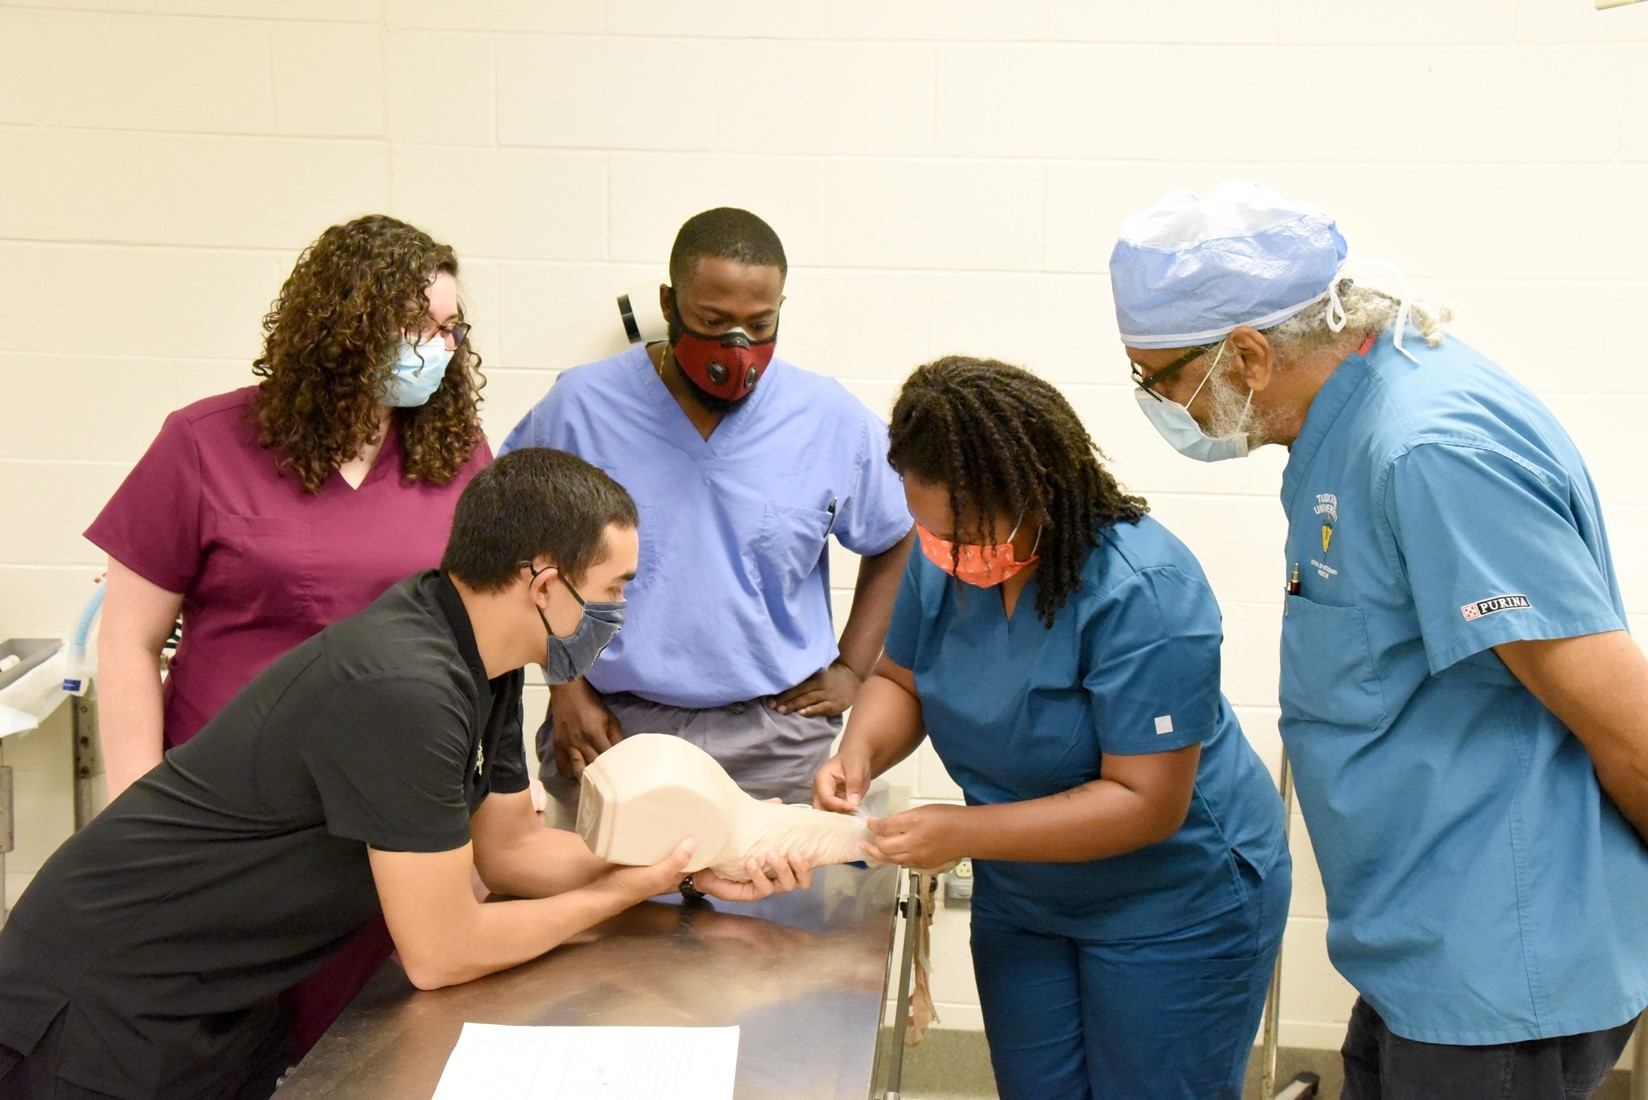 Tuskegee veterinary students in junior surgery are being instructed by clinicians Dr. Lorraine Linn and Dr. Howard King.